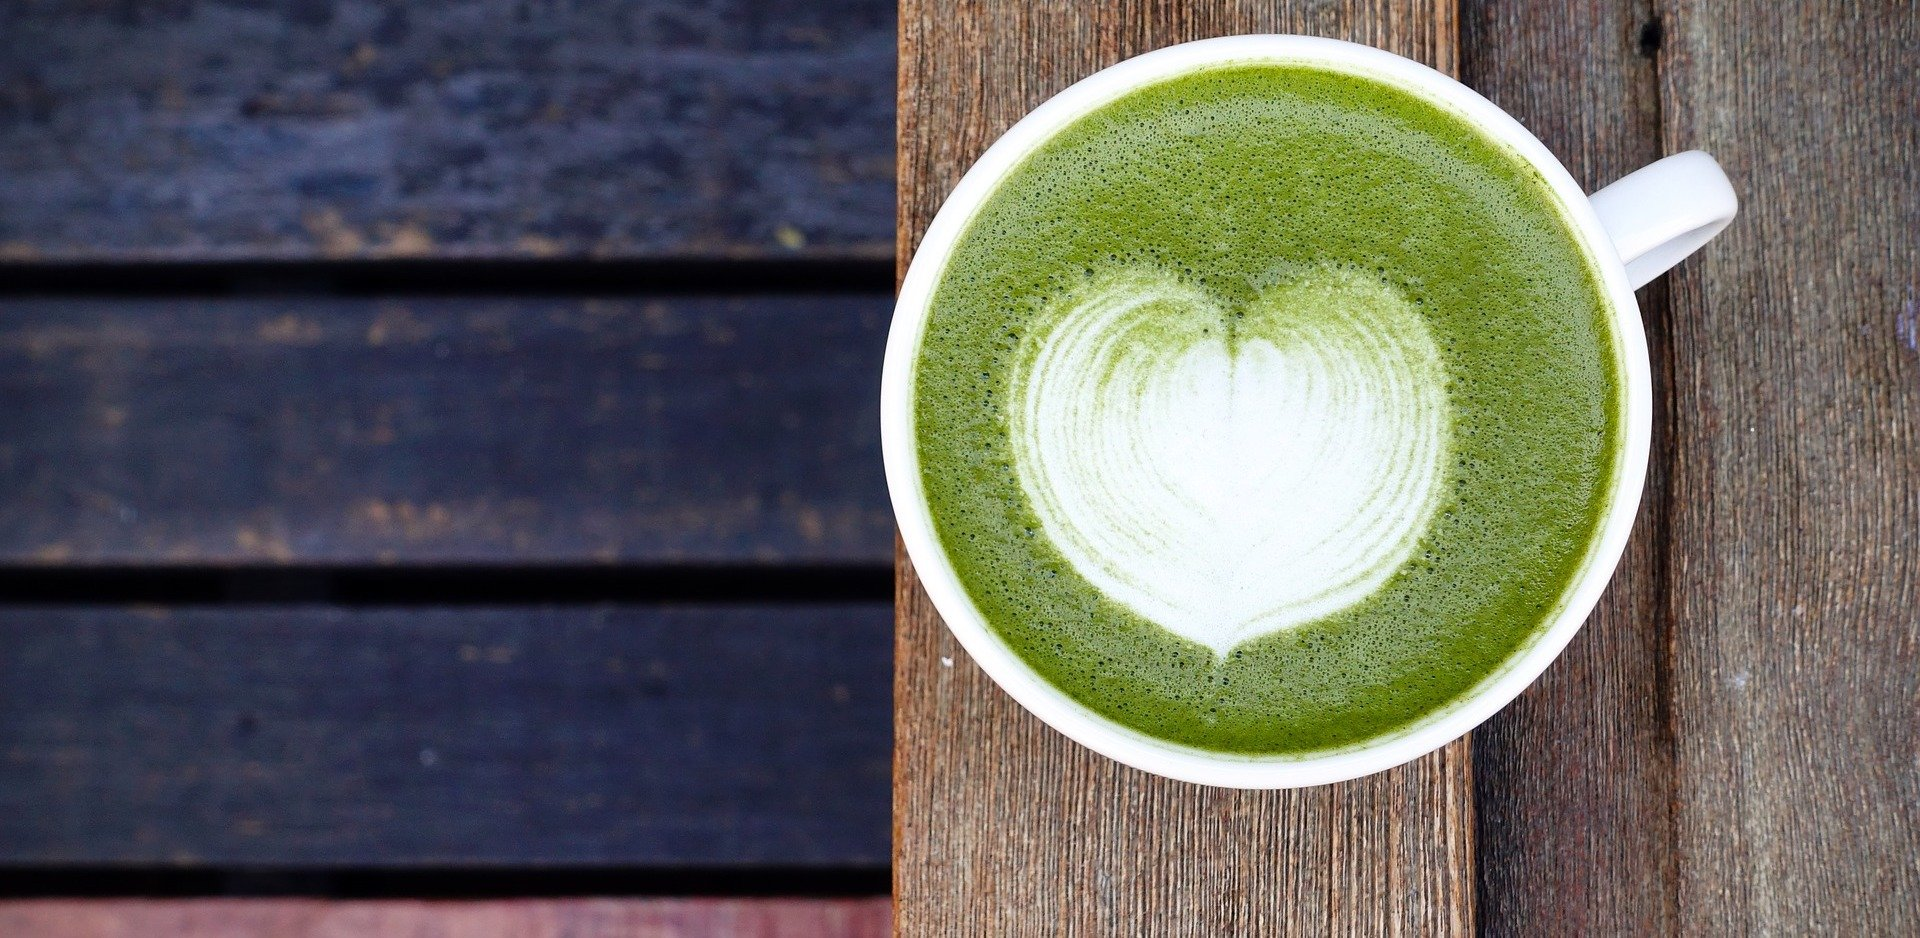 A cup of keto matcha latte with a heart design in its center.